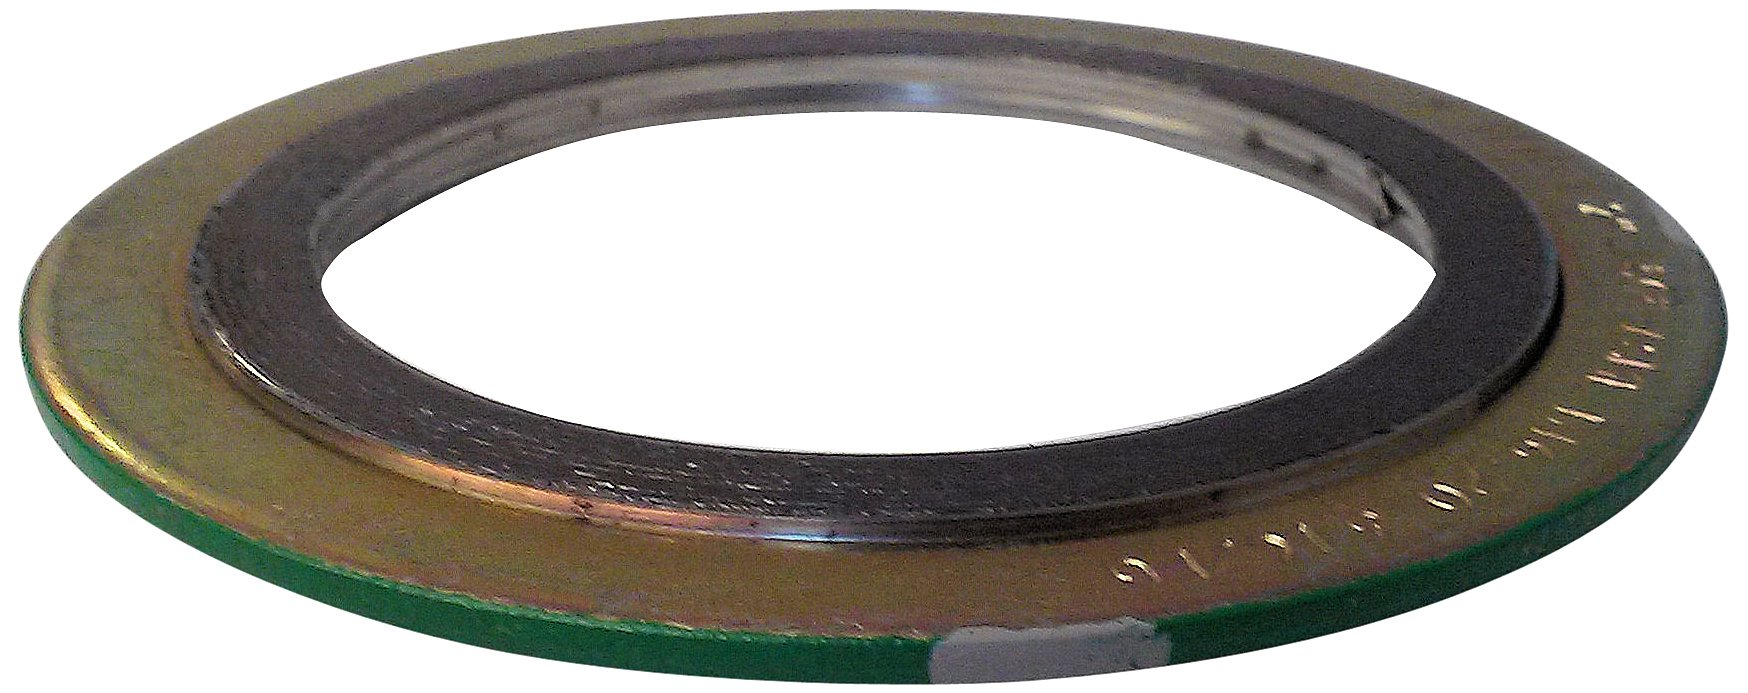 Sur-Seal, Inc. Teadit 90005316GR150 Green Band with Gray Stripe 316LSS/Graphite Spiral Wound Gasket, -150 to 842 Degrees Fahrenheit Temperature Range, 6.13'' ID, 7.75'' OD, for 5'' Pipe Size